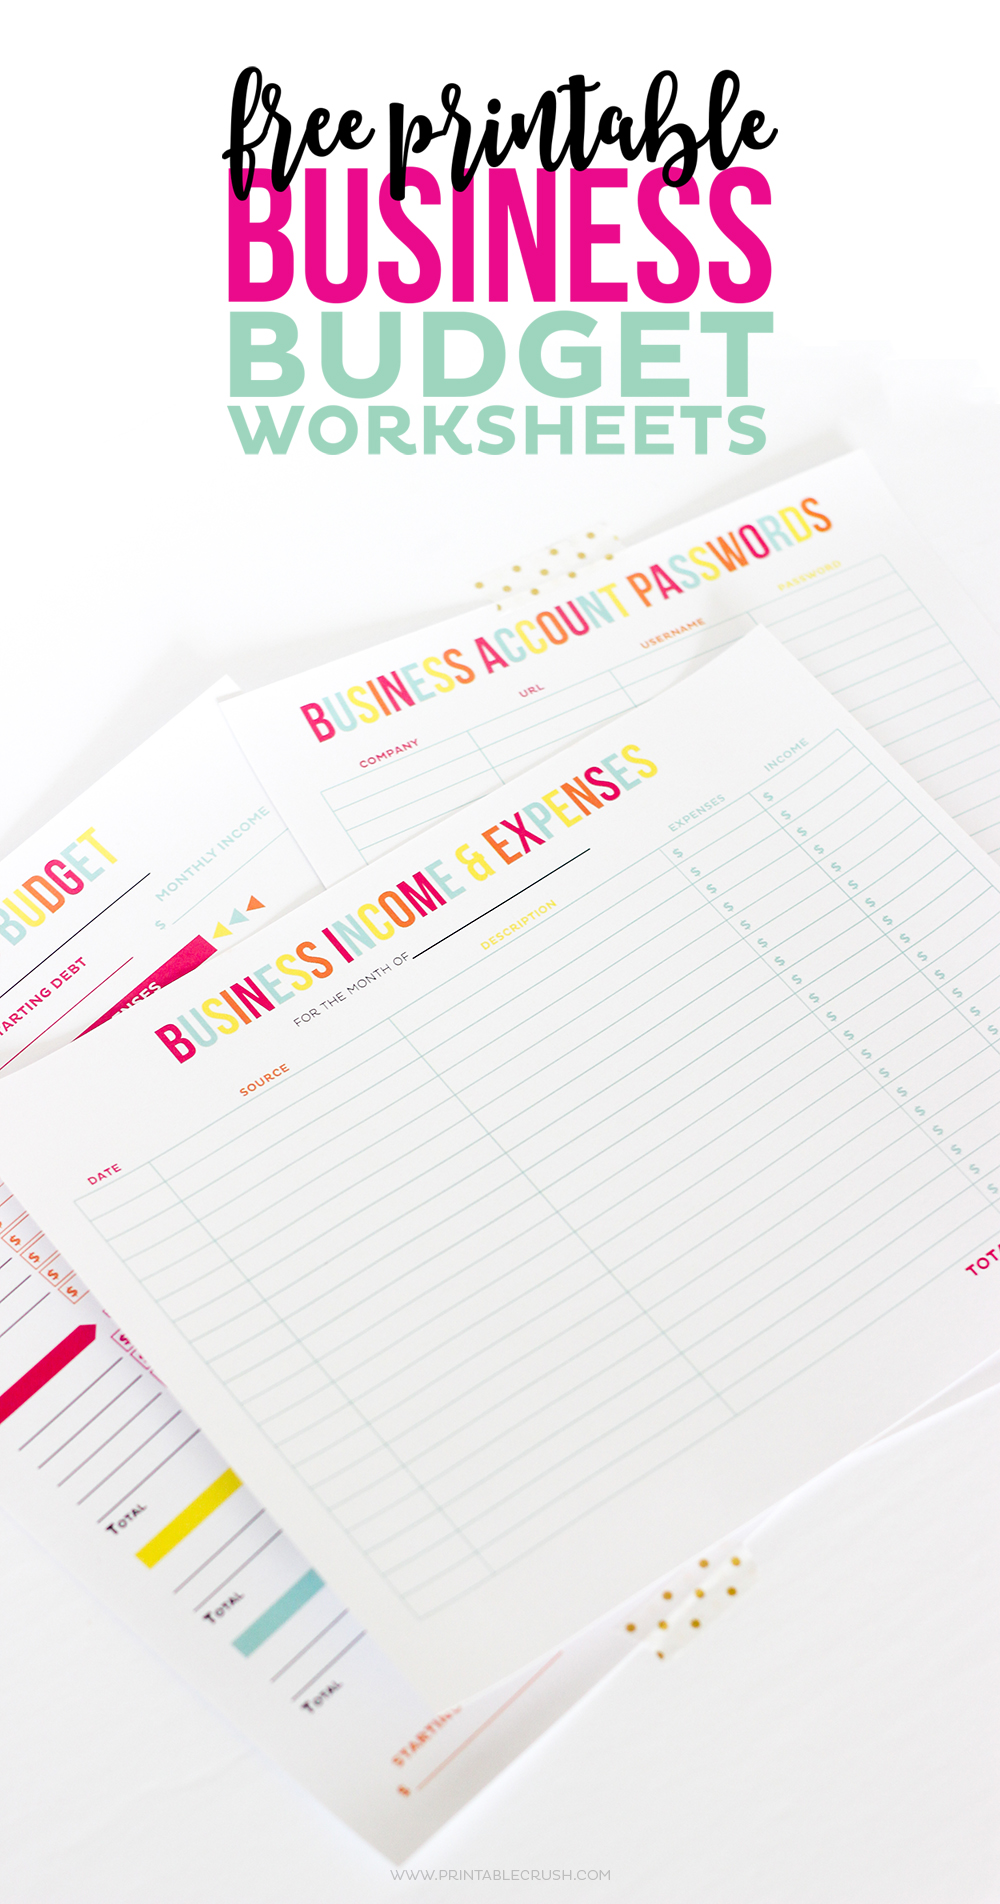 make tax time a little less so with these free printable business budget worksheets includes